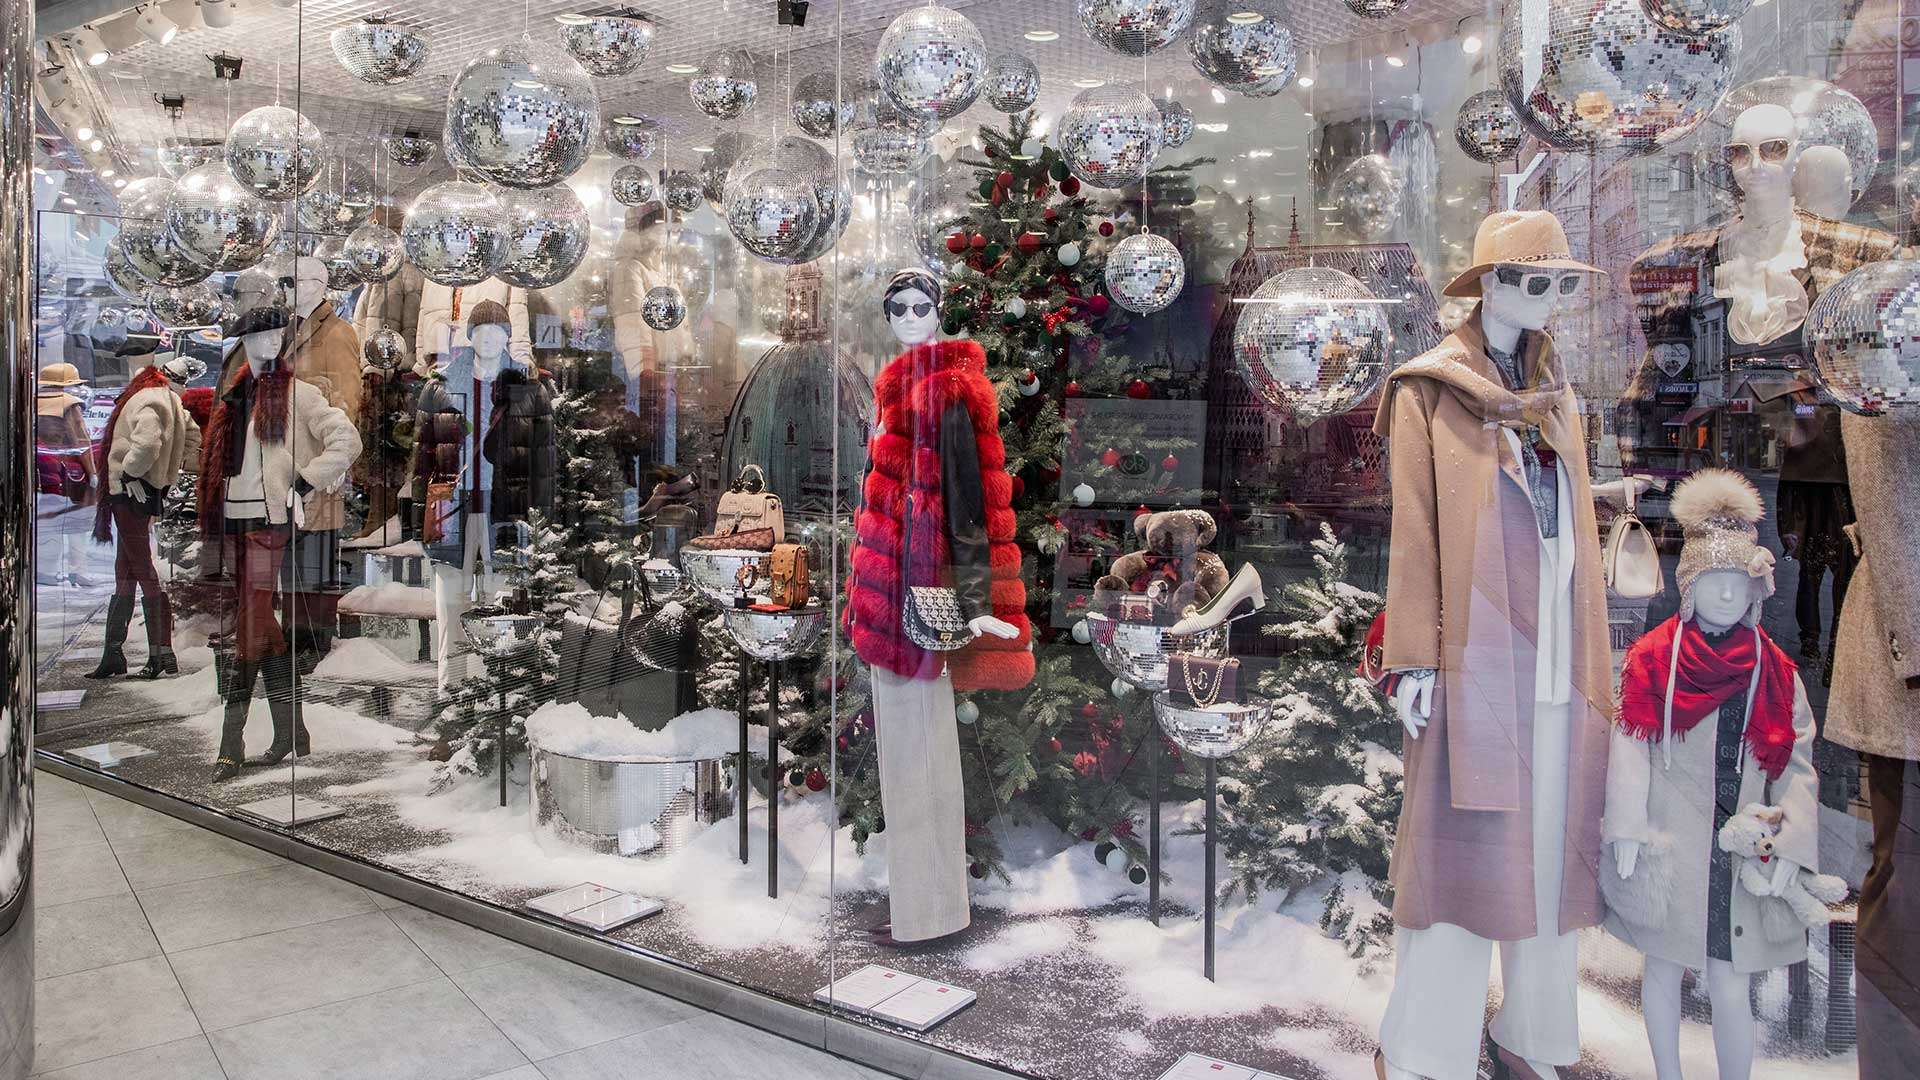 Auf der Suche nach den neusten Fashion Trends, kommt man am Wiener Kaufhaus Steffl nicht vorbei! Im Dezember erwarten einen hier außerdem unsere exklusiven Duftkerzen der Falstaff LIVING Home Collection. In diesem Sinne: Happy Shopping! steffl-vienna.at​​​​​​​